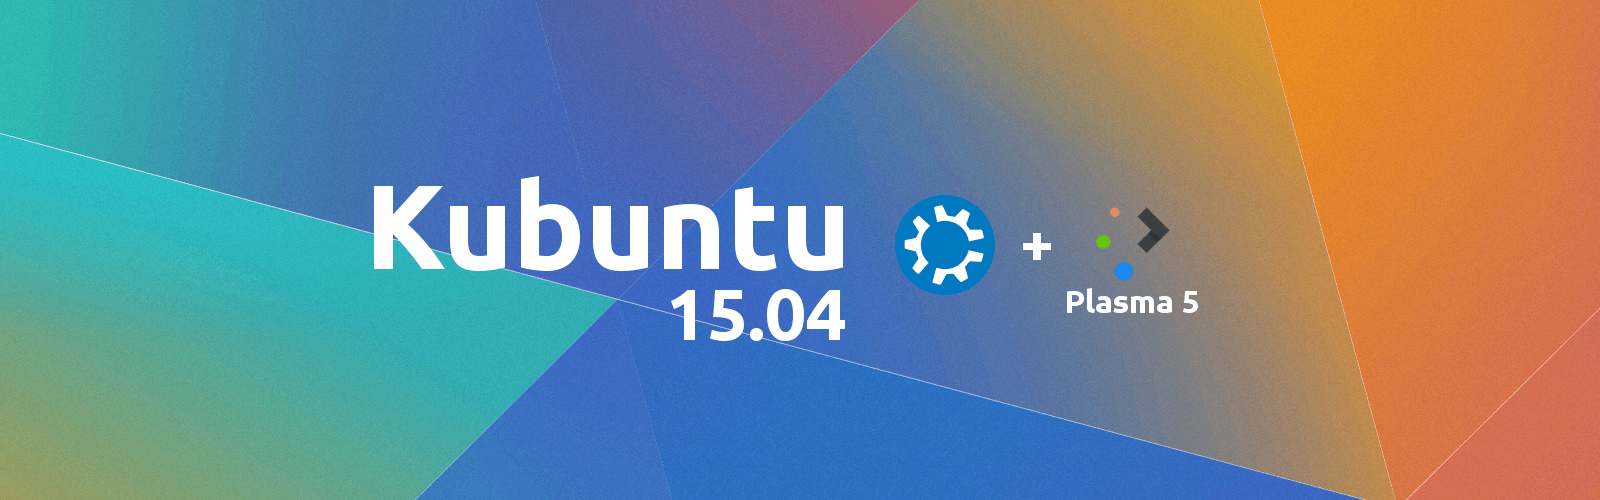 Kubuntu: Help make us better!